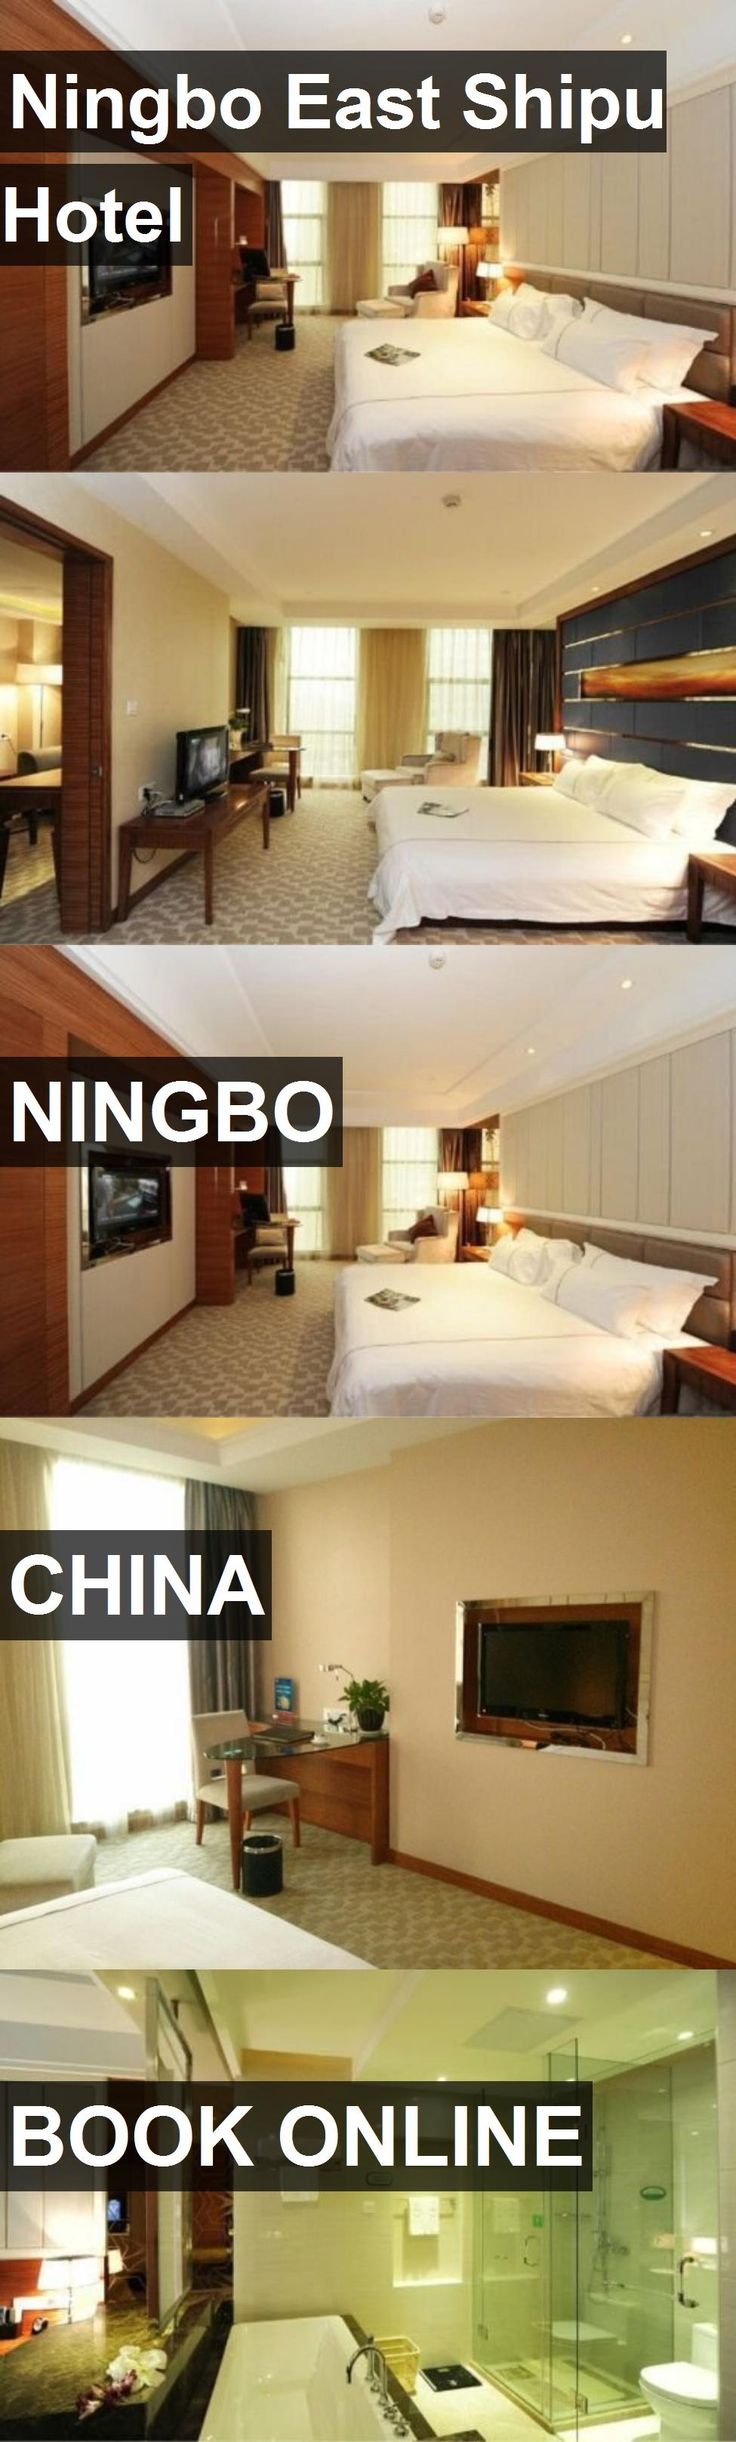 Ningbo East Shipu Hotel in Ningbo, China. For more information, photos, reviews and best prices please follow the link. #China #Ningbo #travel #vacation #hotel